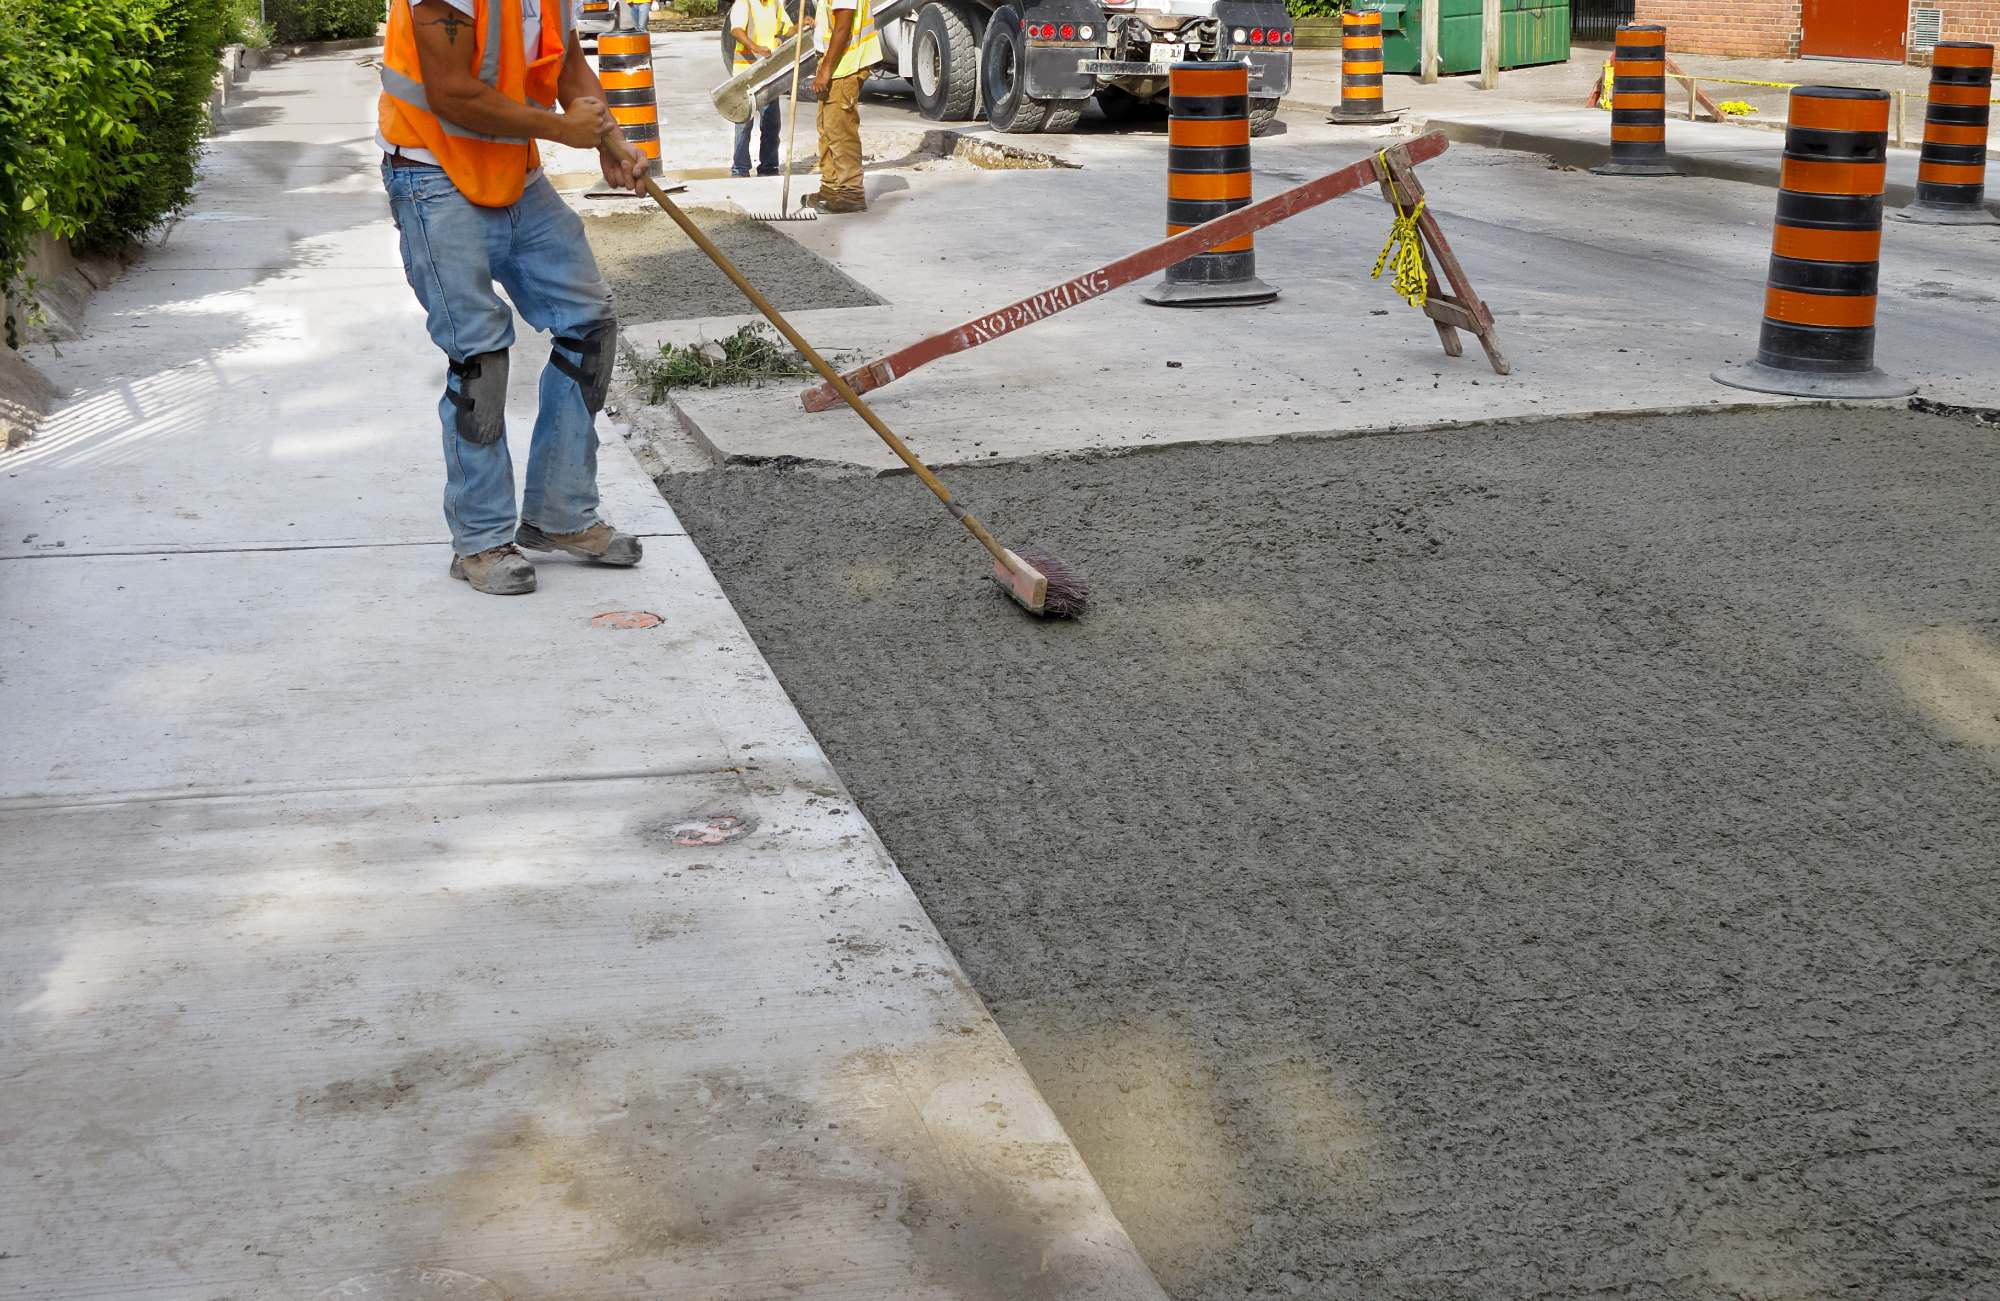 Workers at Construction Site Placing Concrete Slab